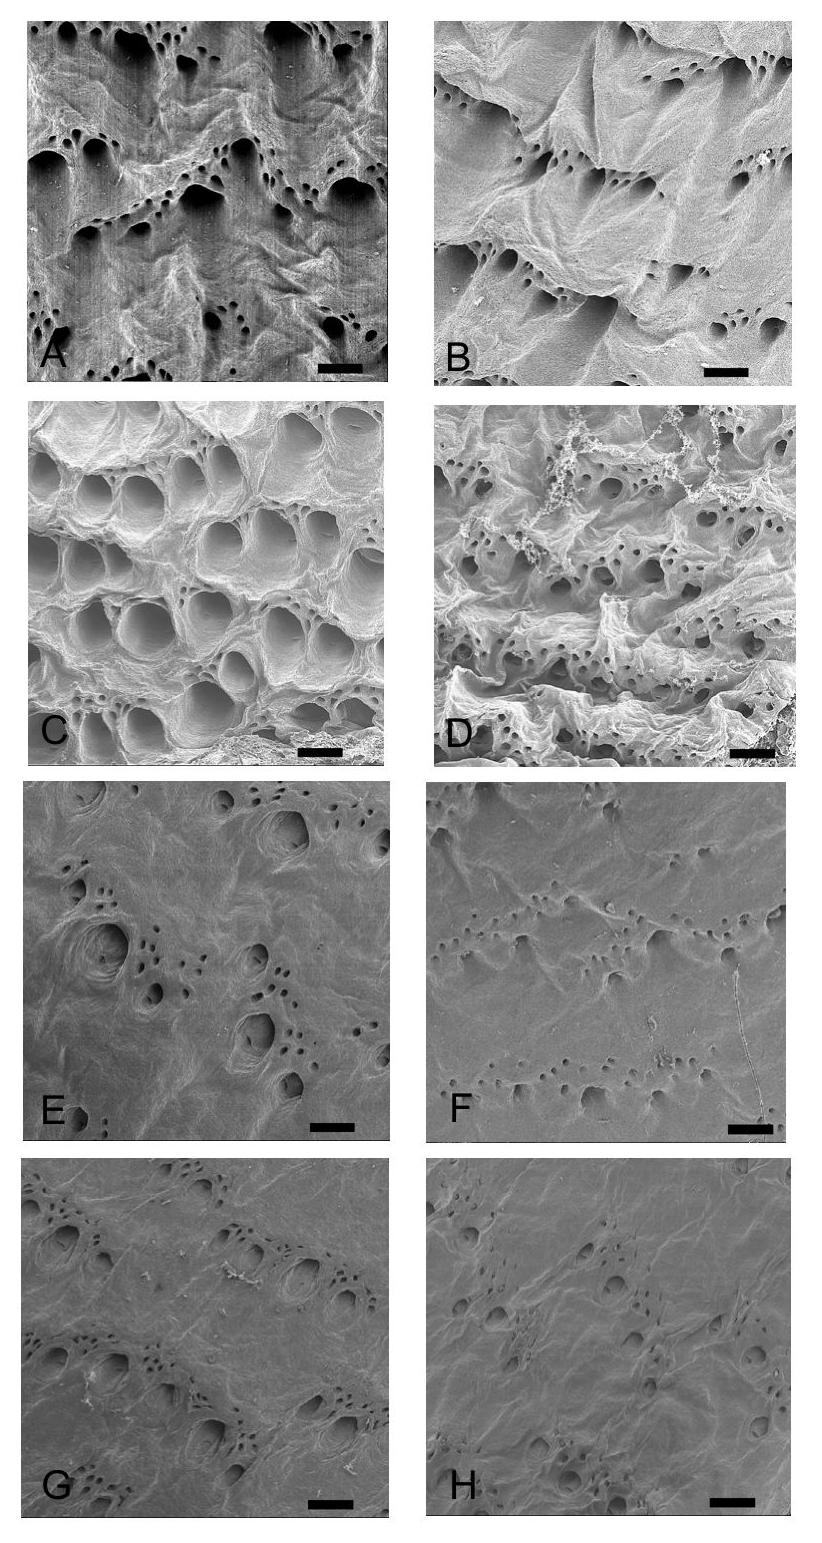 Fig. 1 SEM views of yeso sika deer skin and vegetable tanned leather grain Raw skin (A-D), vegetable tanned